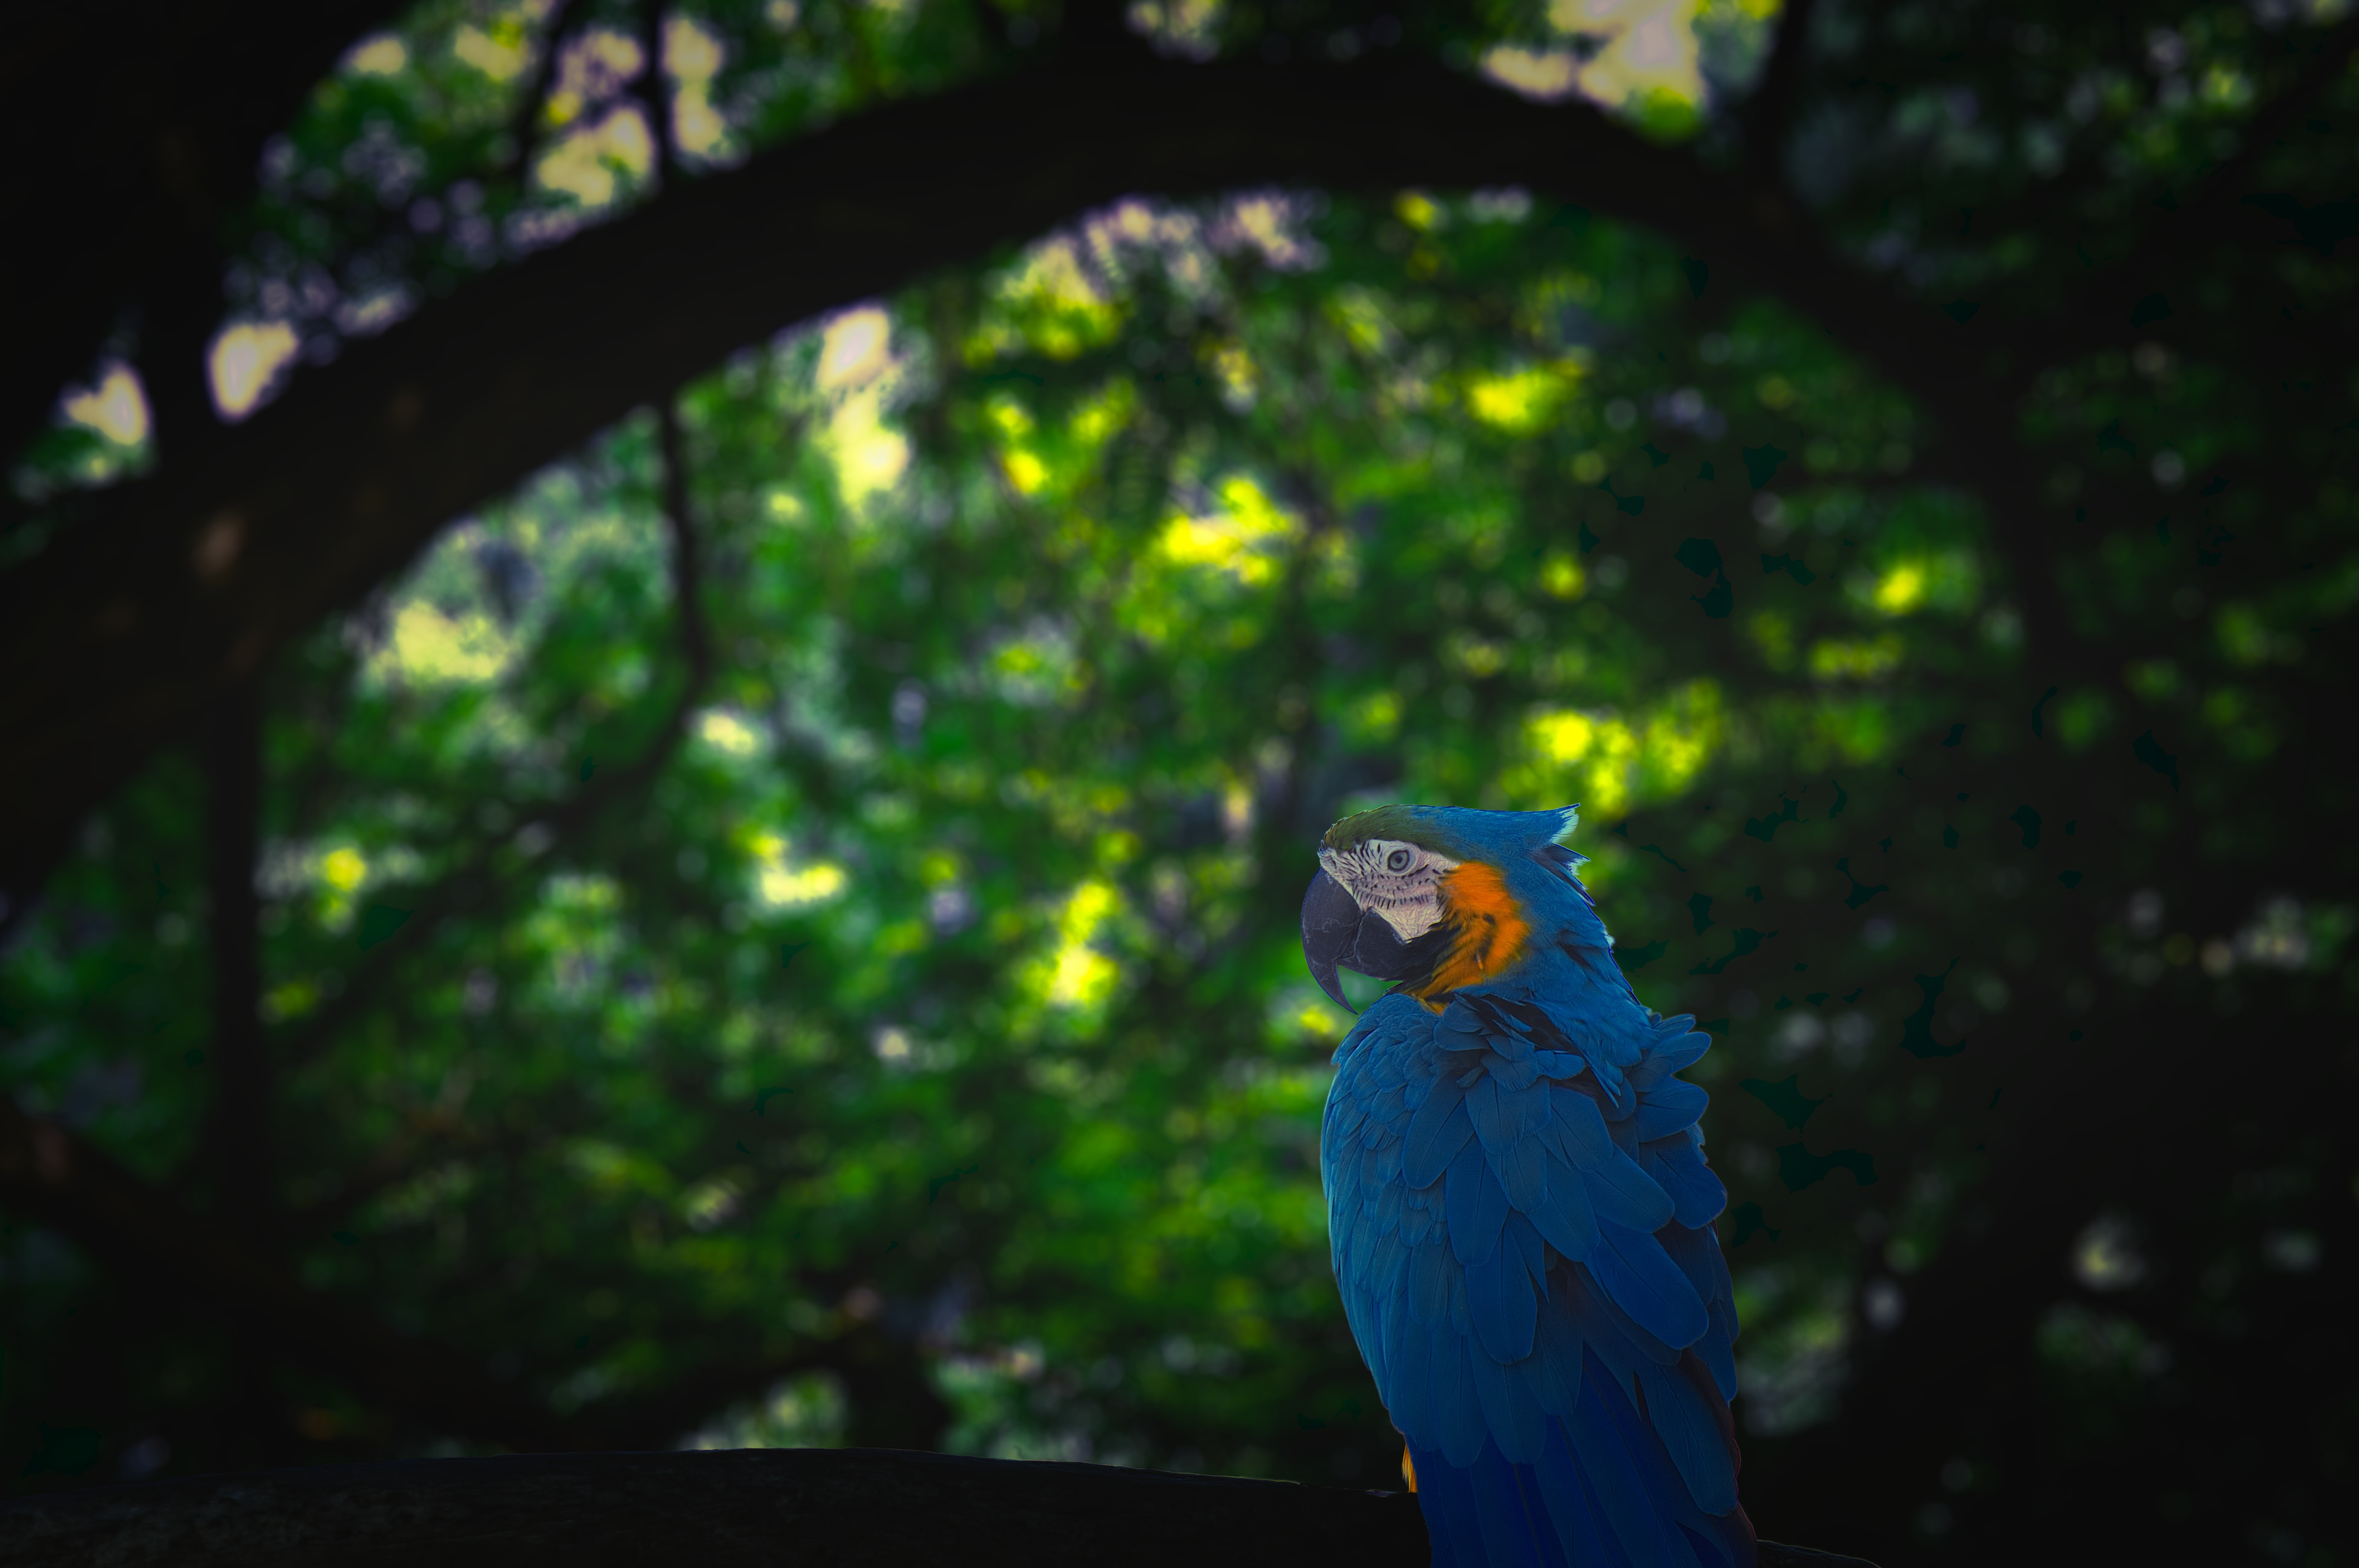 132829 download wallpaper Animals, Macaw, Parrots, Bird, Jungle screensavers and pictures for free